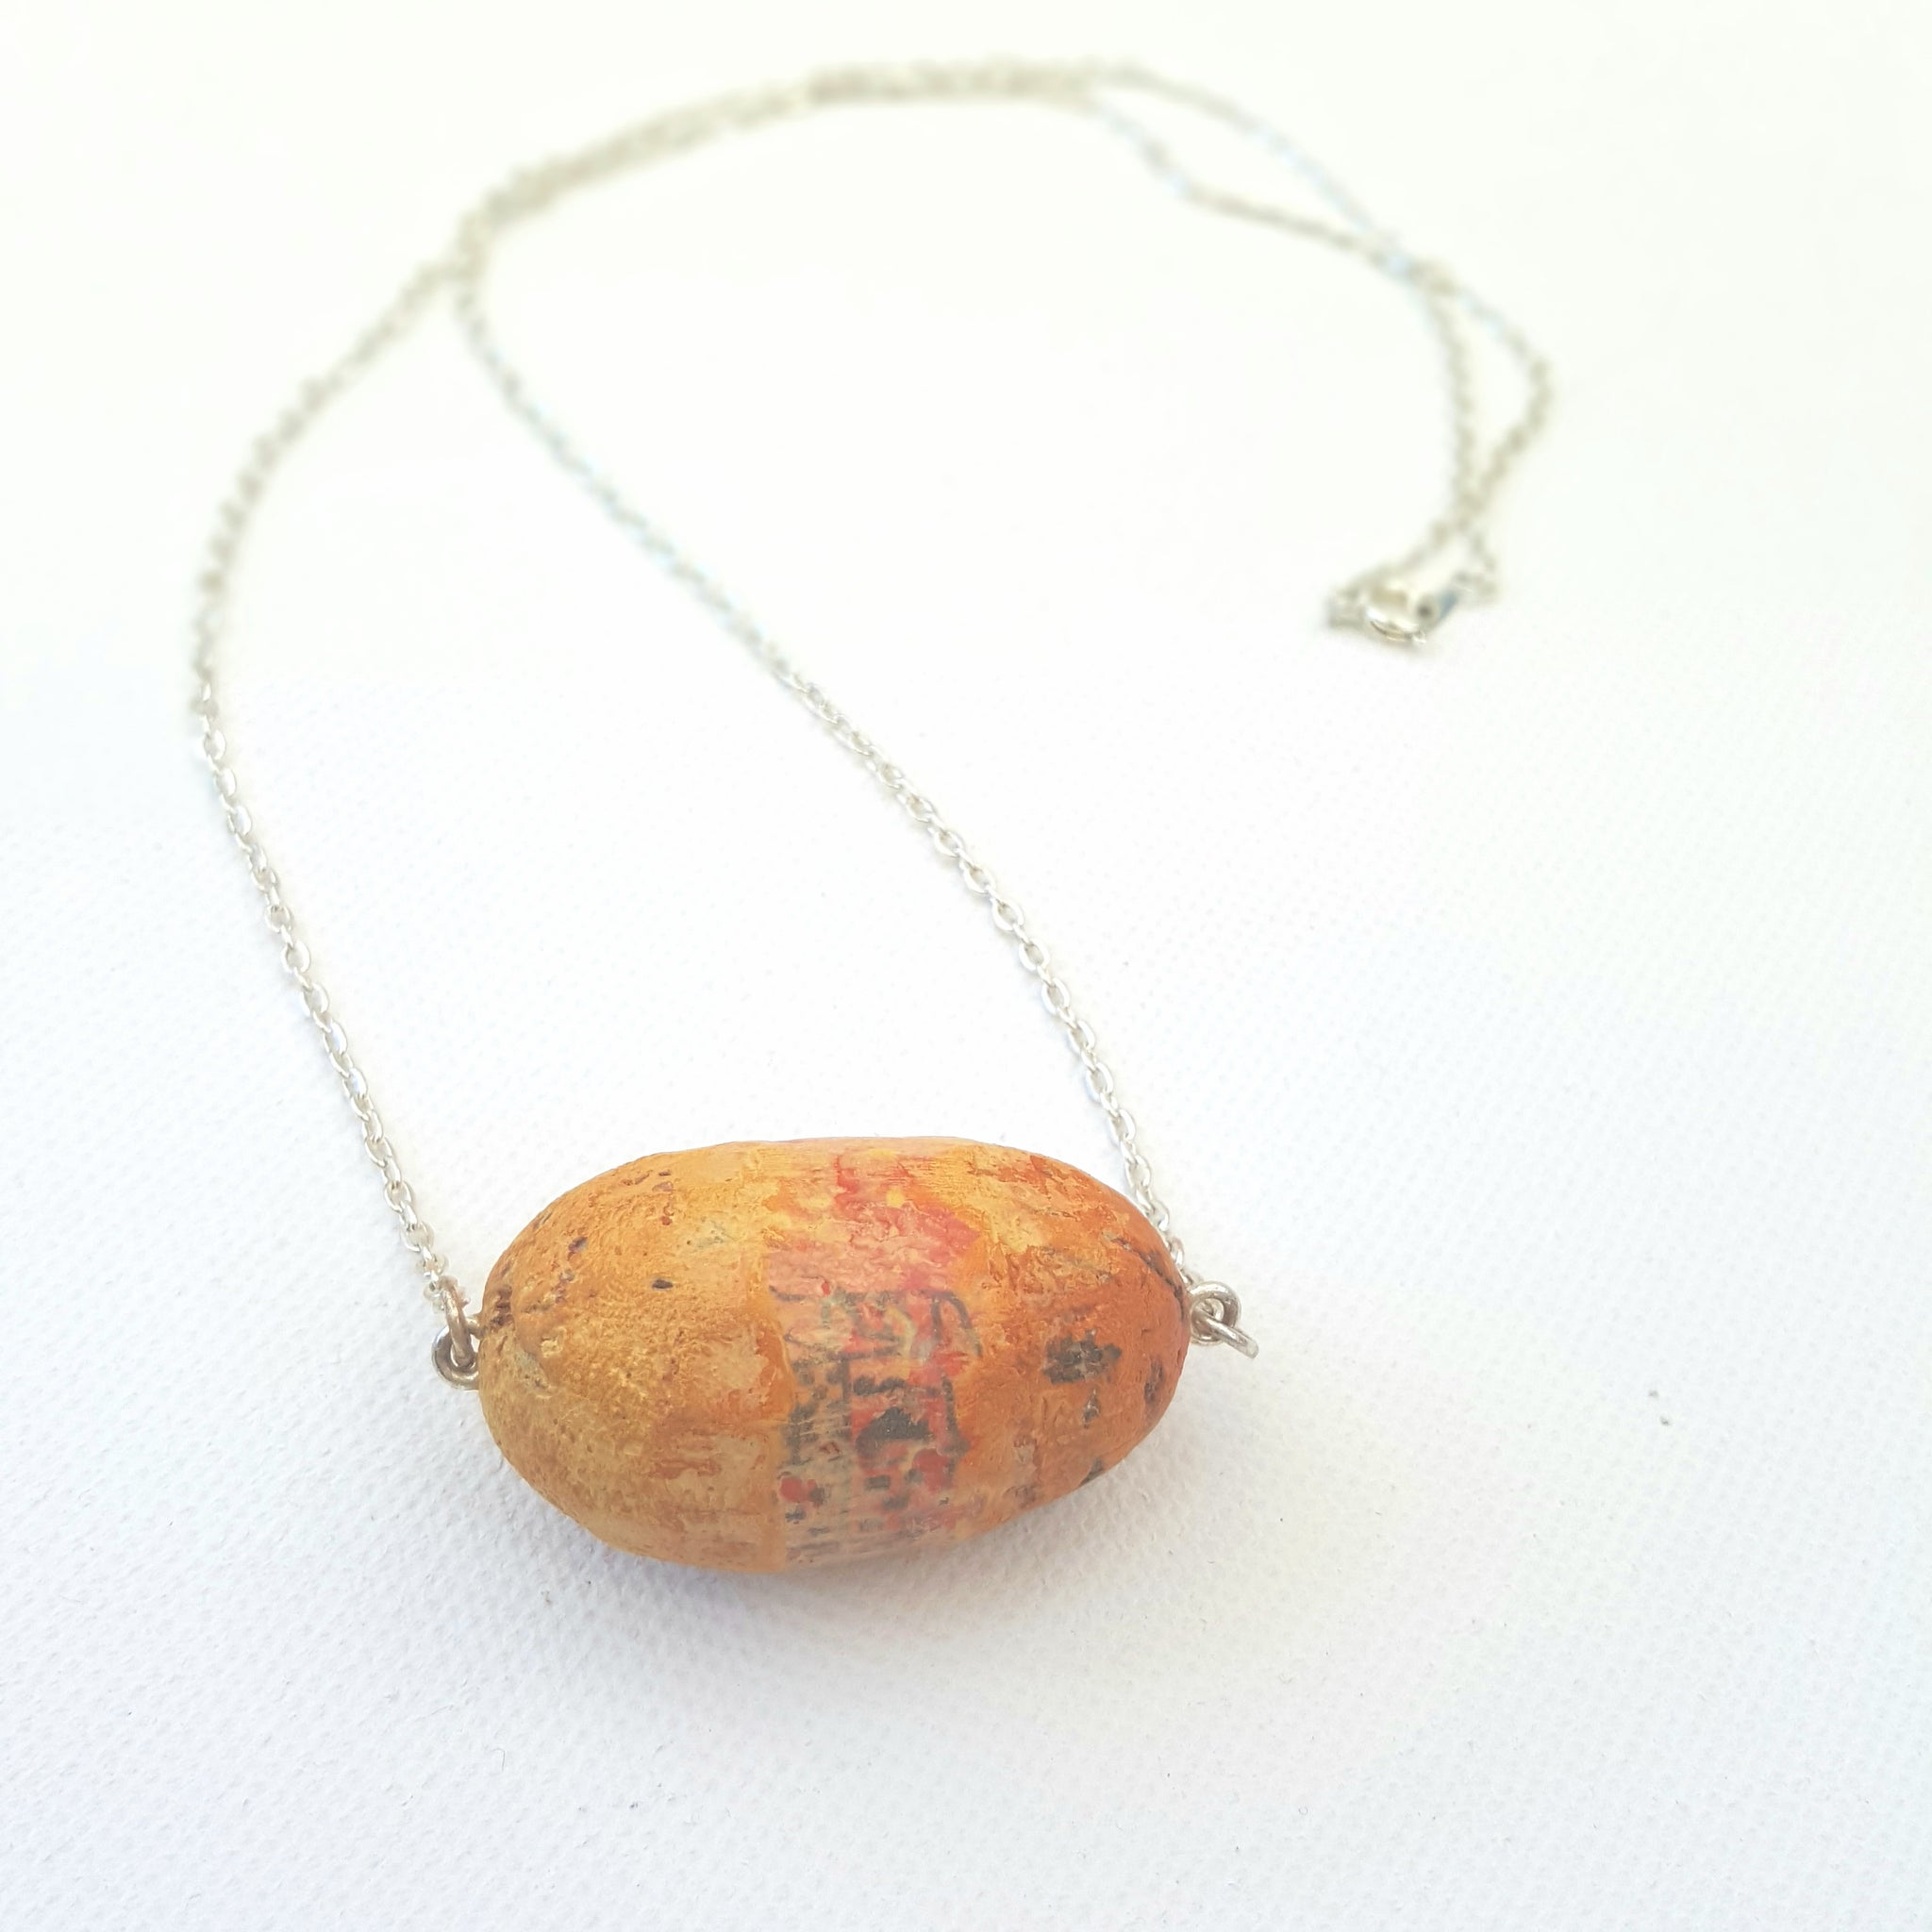 Stay Afloat Necklace - Yellow Ochre Cork Amulet